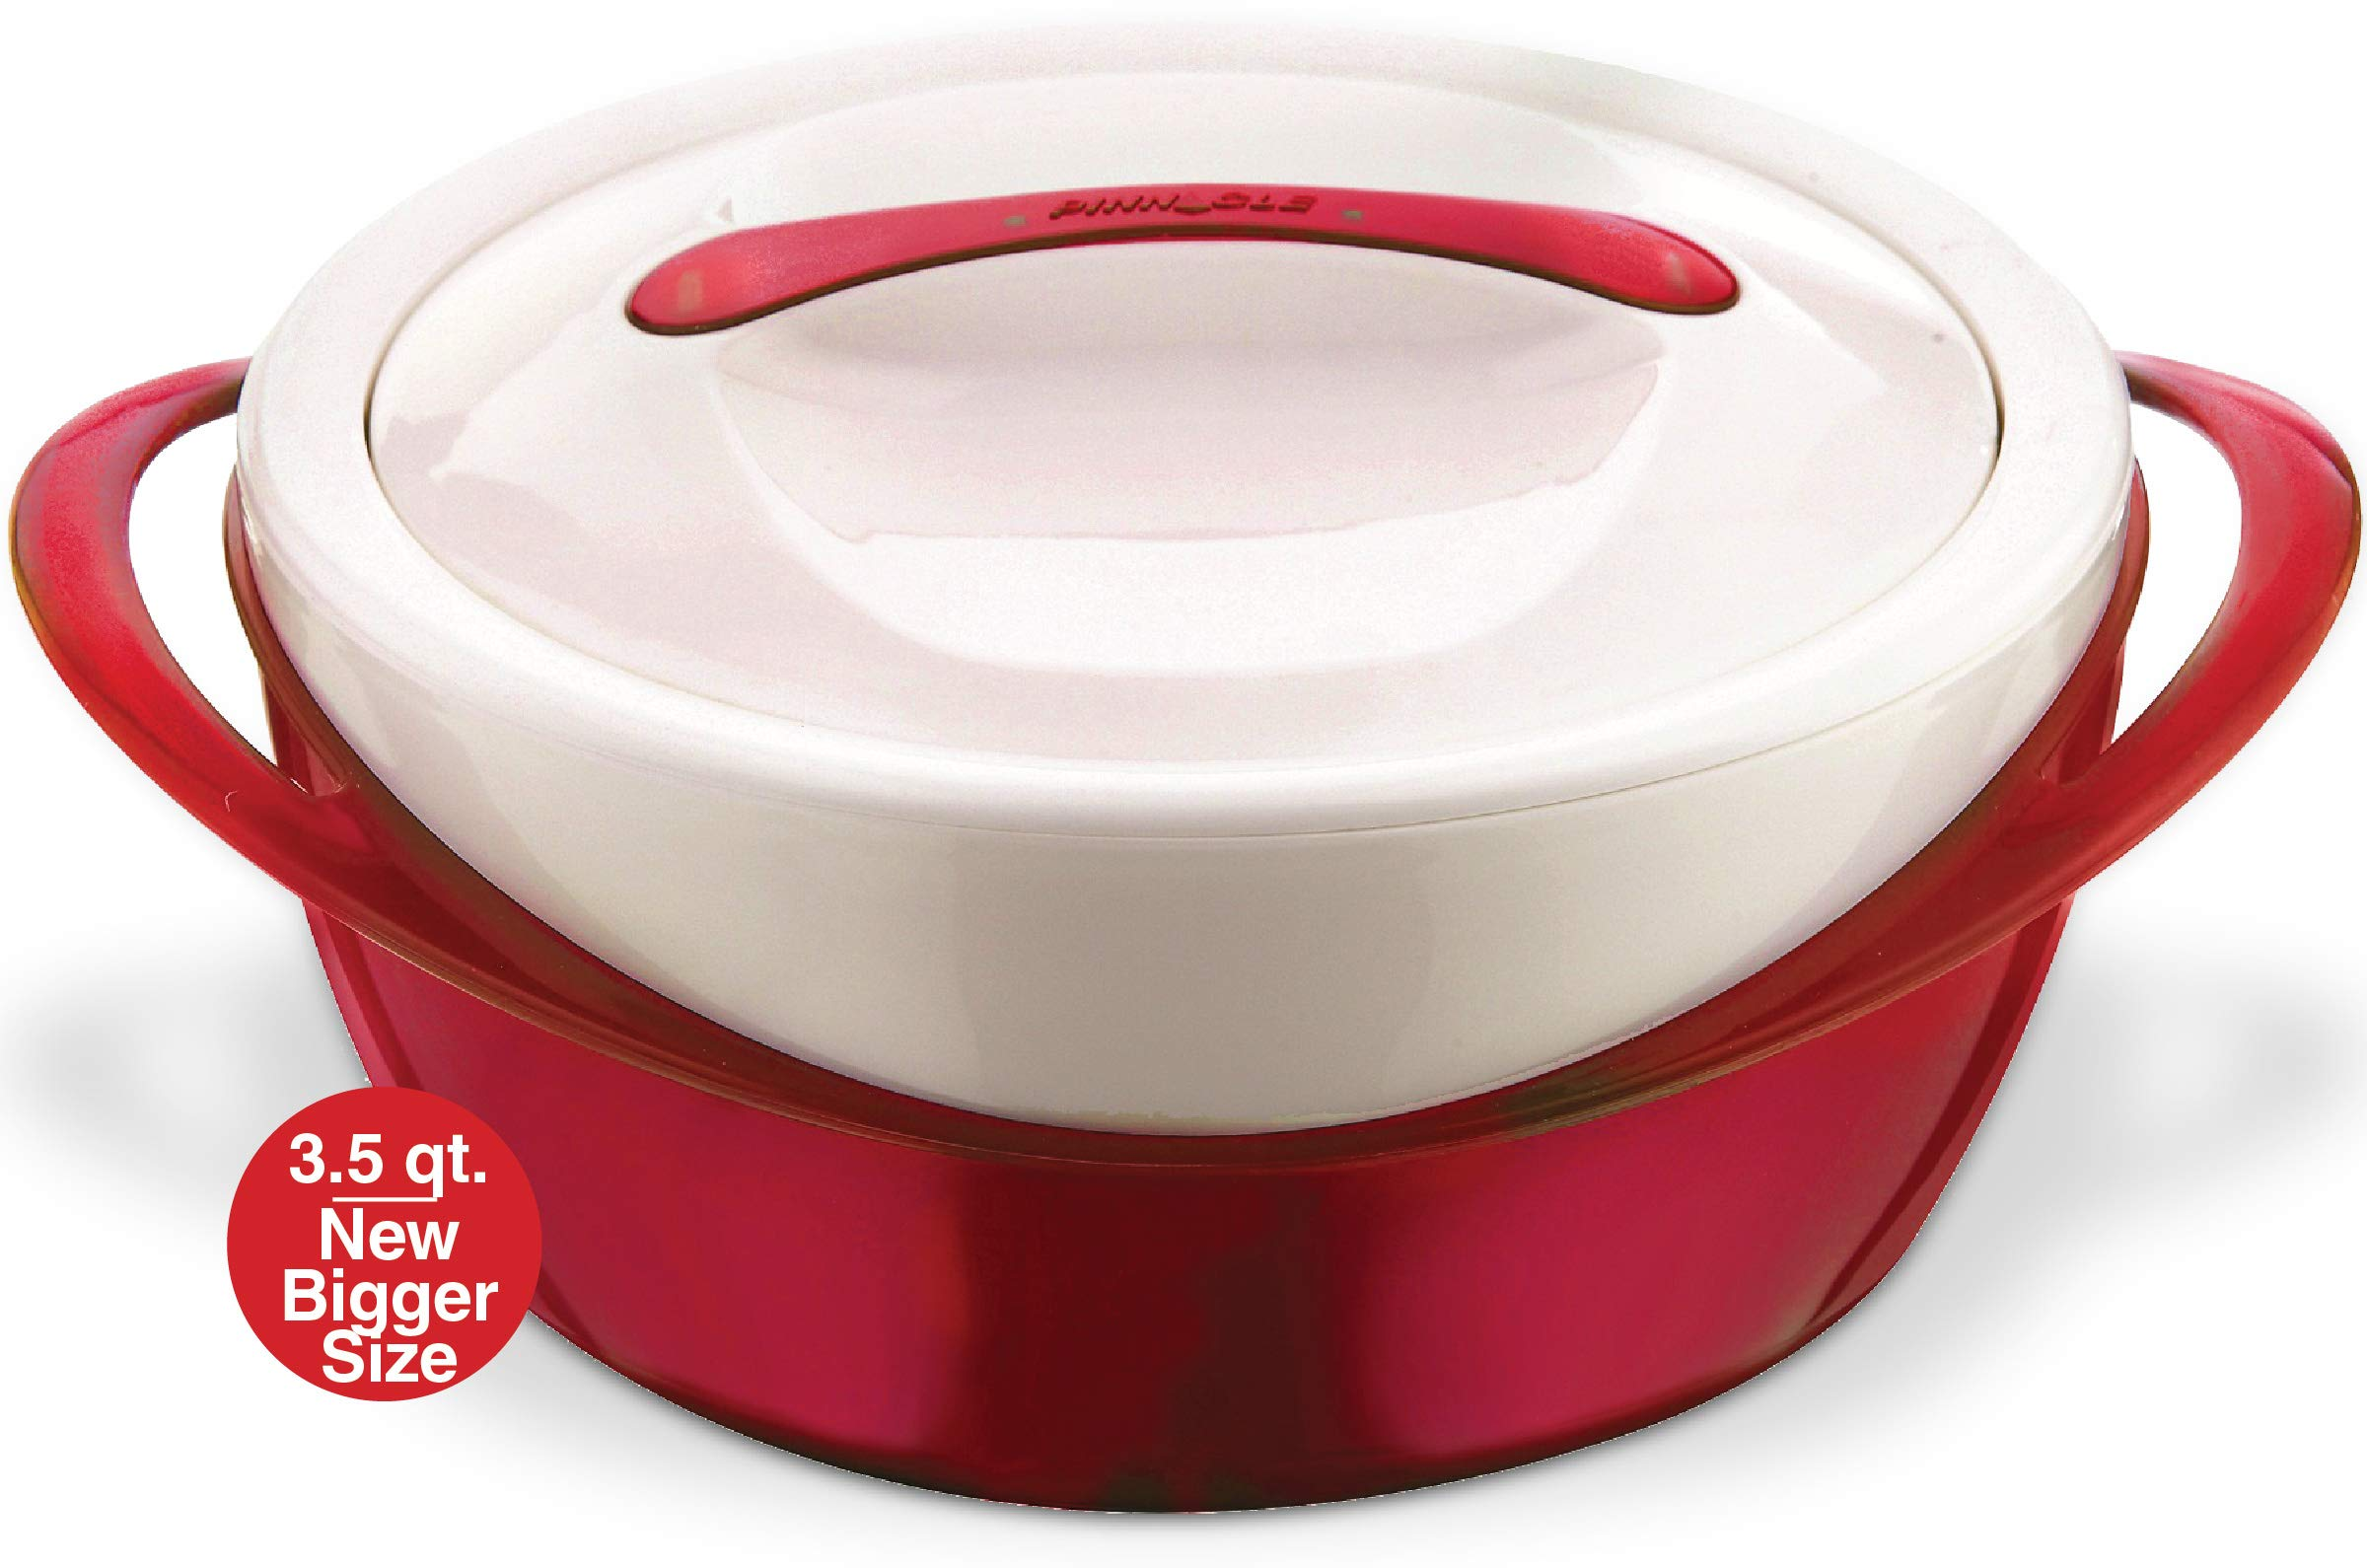 Pinnacle Casserole Dish - Large Soup and Salad Bowl - Insulated Serving Bowl With Lid (3.6 qt, Red)